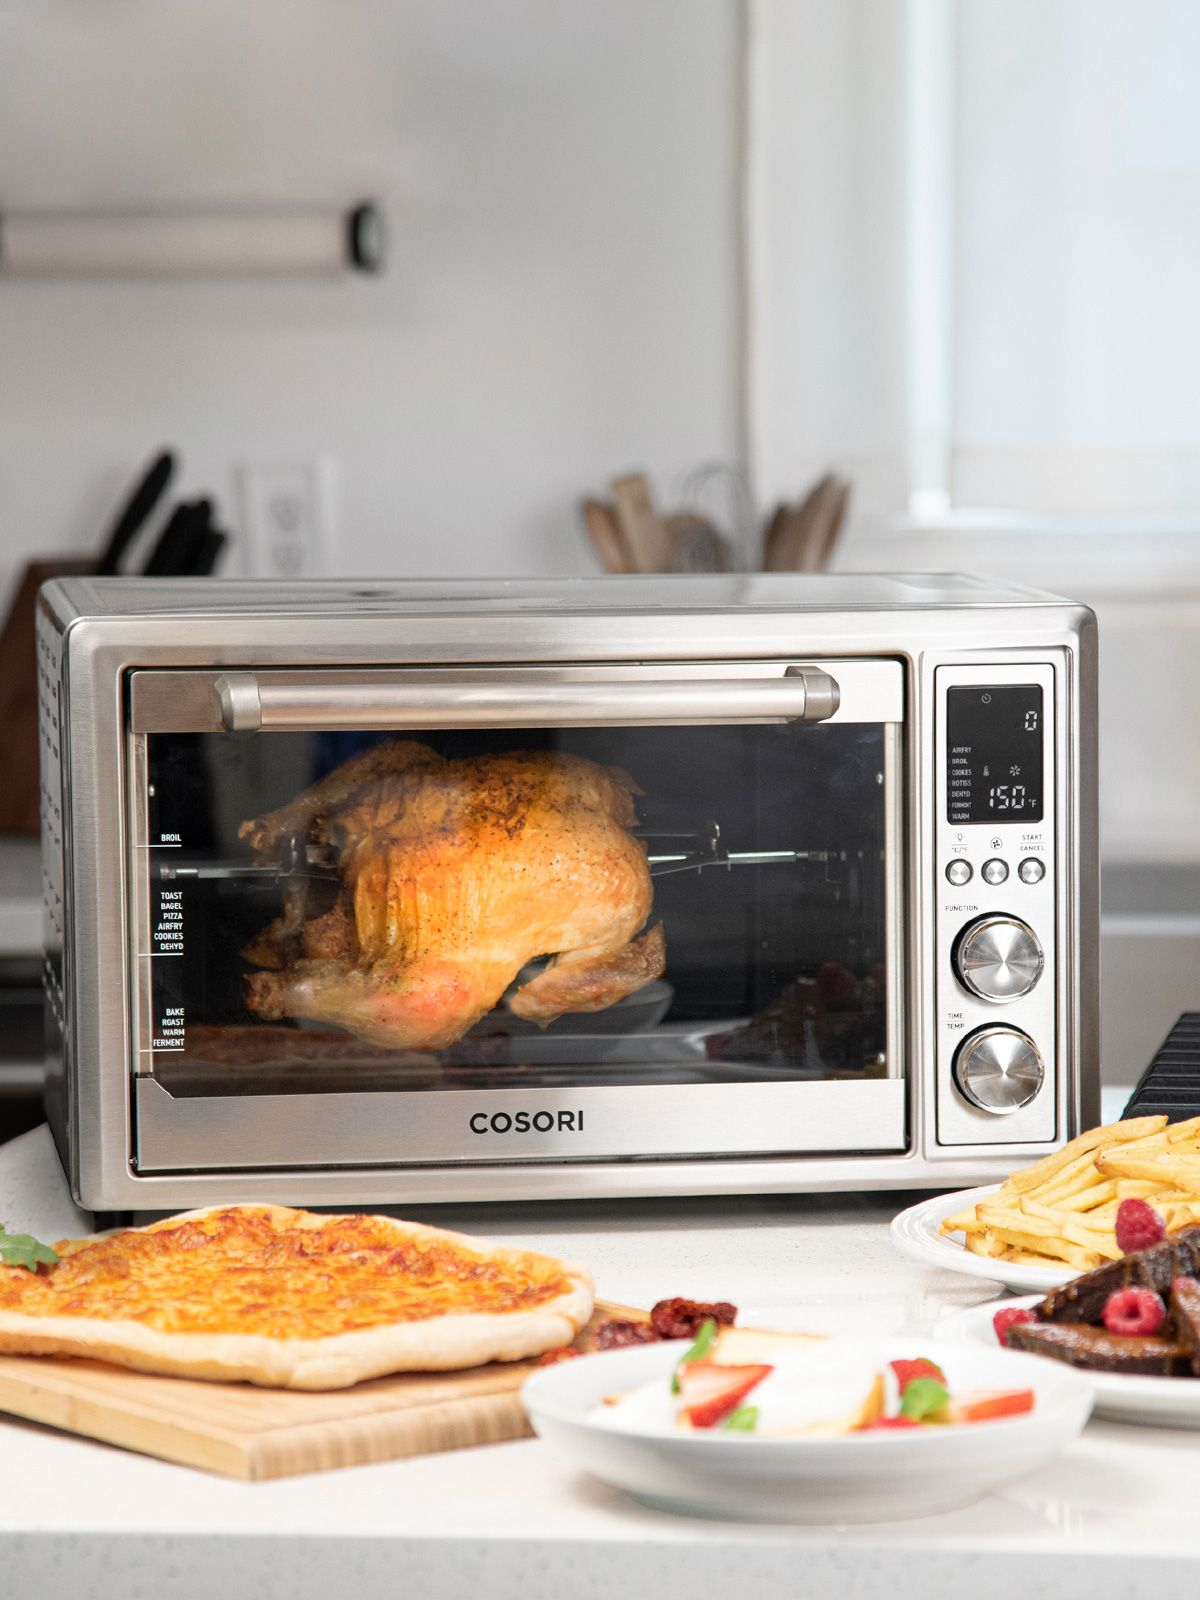 Cosori Air Fryer Toaster Oven Co130 Ao In 2020 Toaster Oven